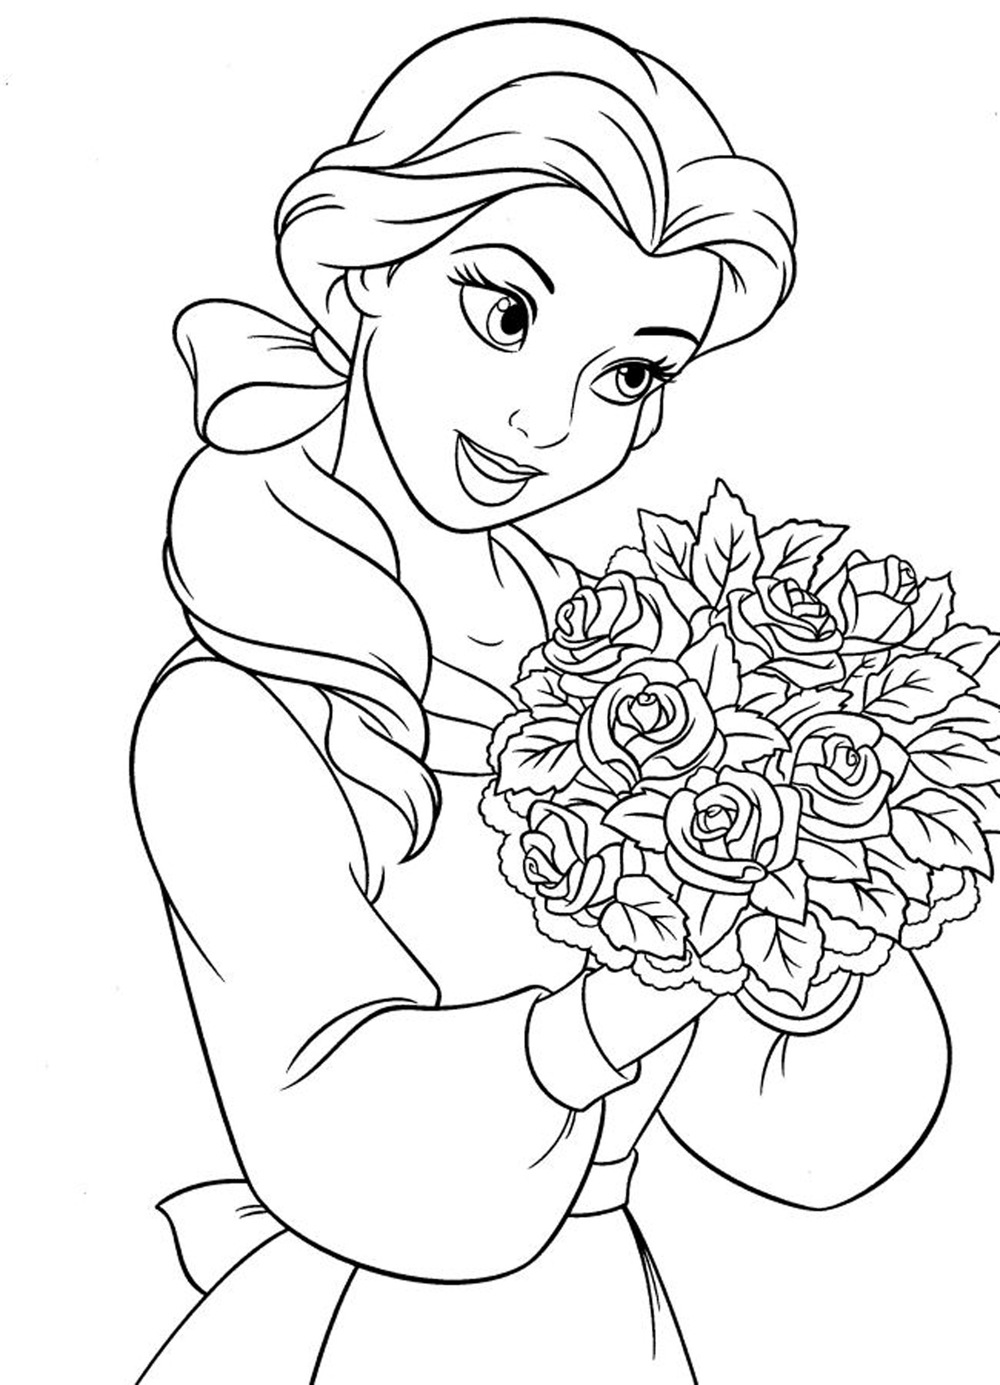 free disney coloring pages online printables disney coloring pages free for adults only coloring pages online pages printables coloring disney free